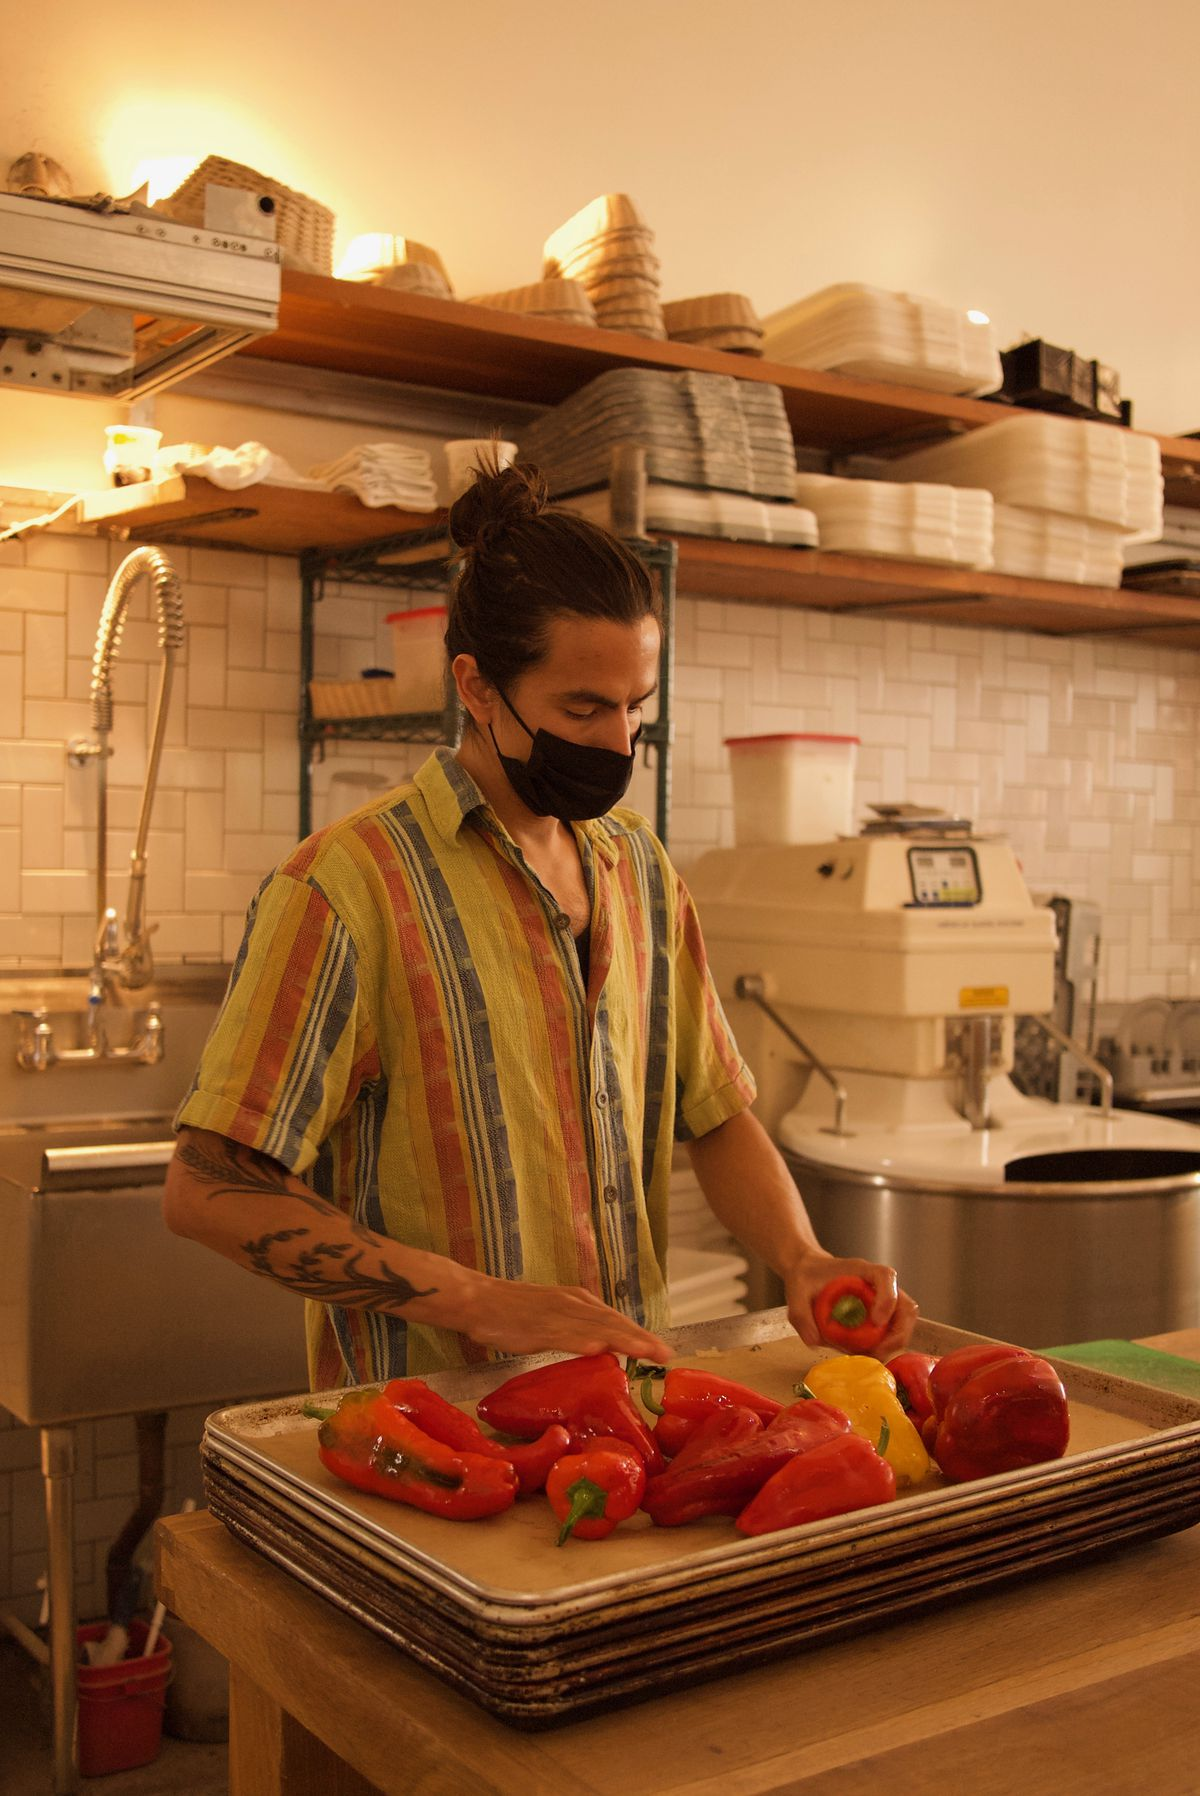 David X. Torres, wearing a mask, places whole red and yellow bell peppers on a sheet tray in a kitchen.